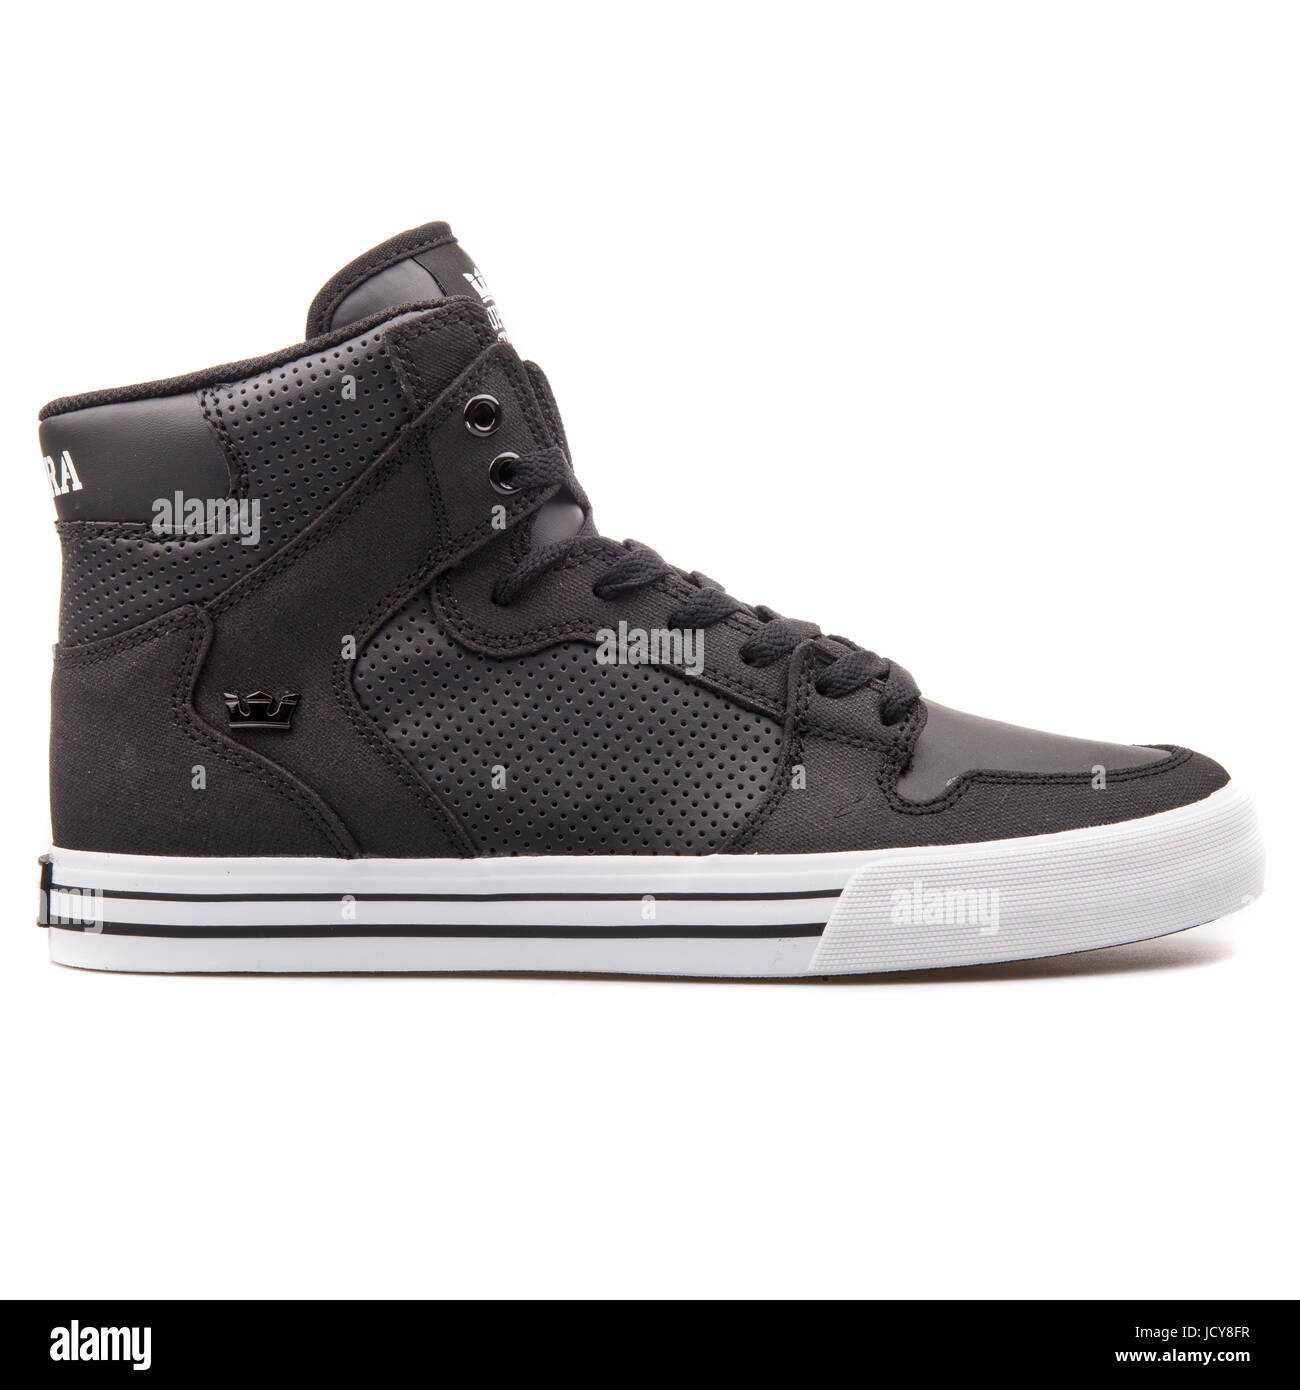 factory price 71393 62985 Supra Vaider Black and White Men s Sports Shoes - S28188 - Stock Image